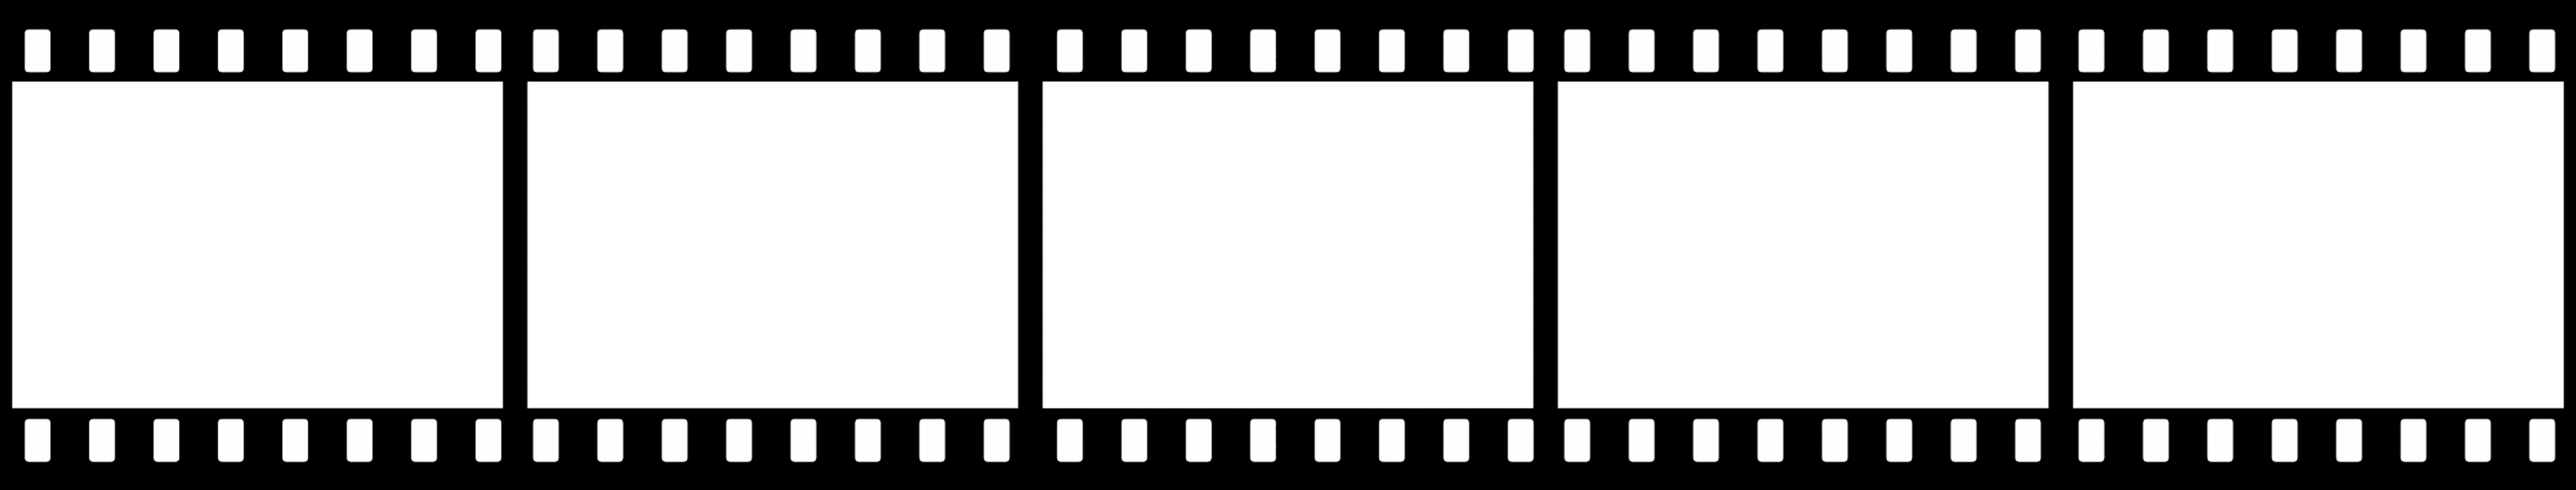 Filmstreifen Bilderrahmen Film Strip Png 56721080 Film Strip Pinterest